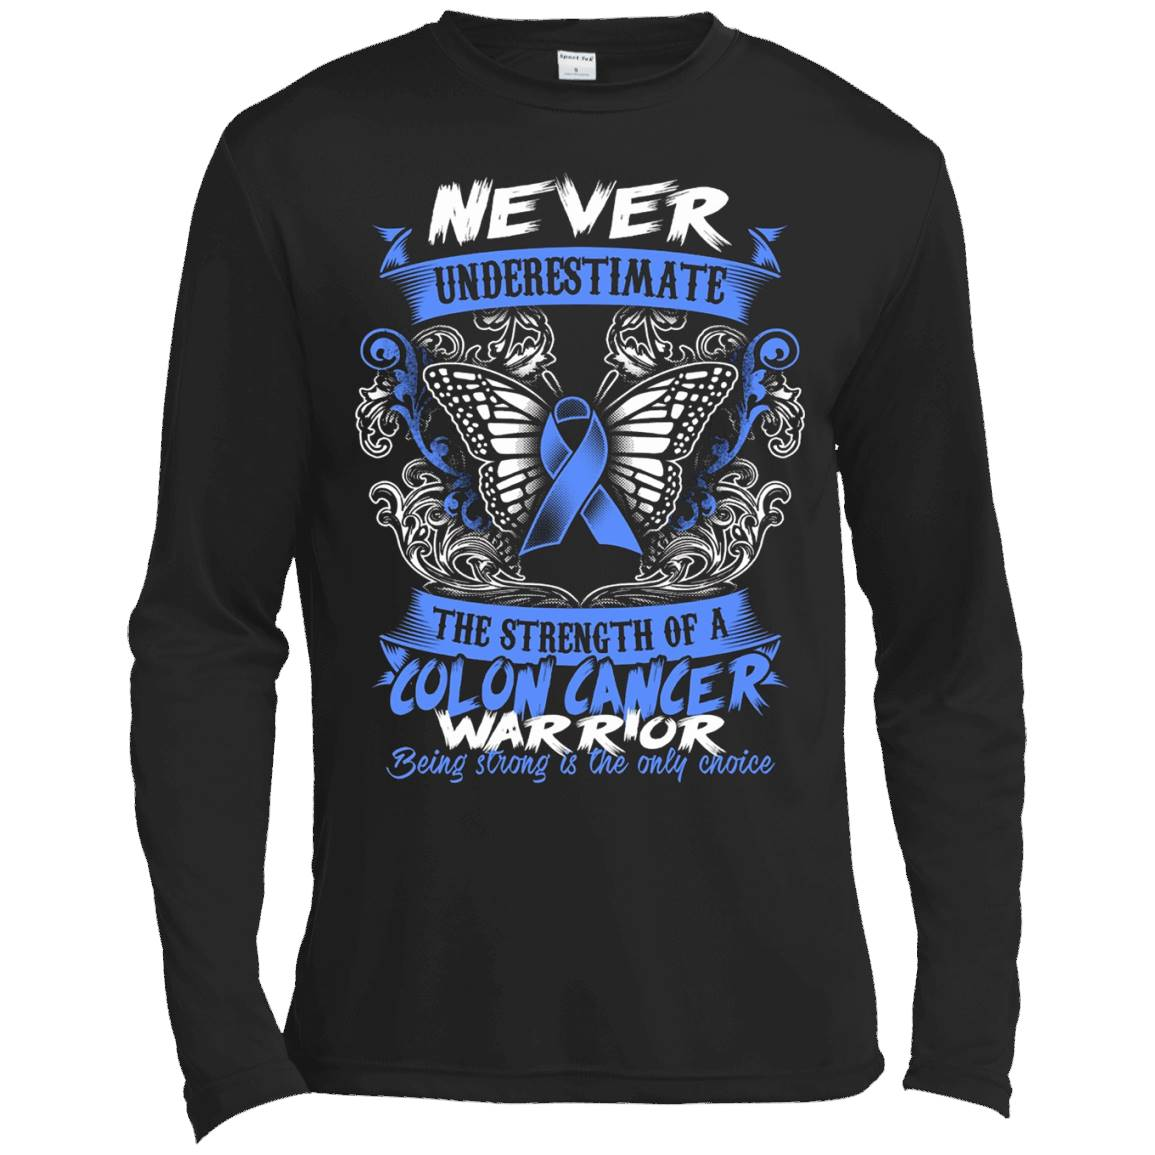 Colon Cancer Awareness T Shirt 2016 – Be Strong – Long Sleeve Tee